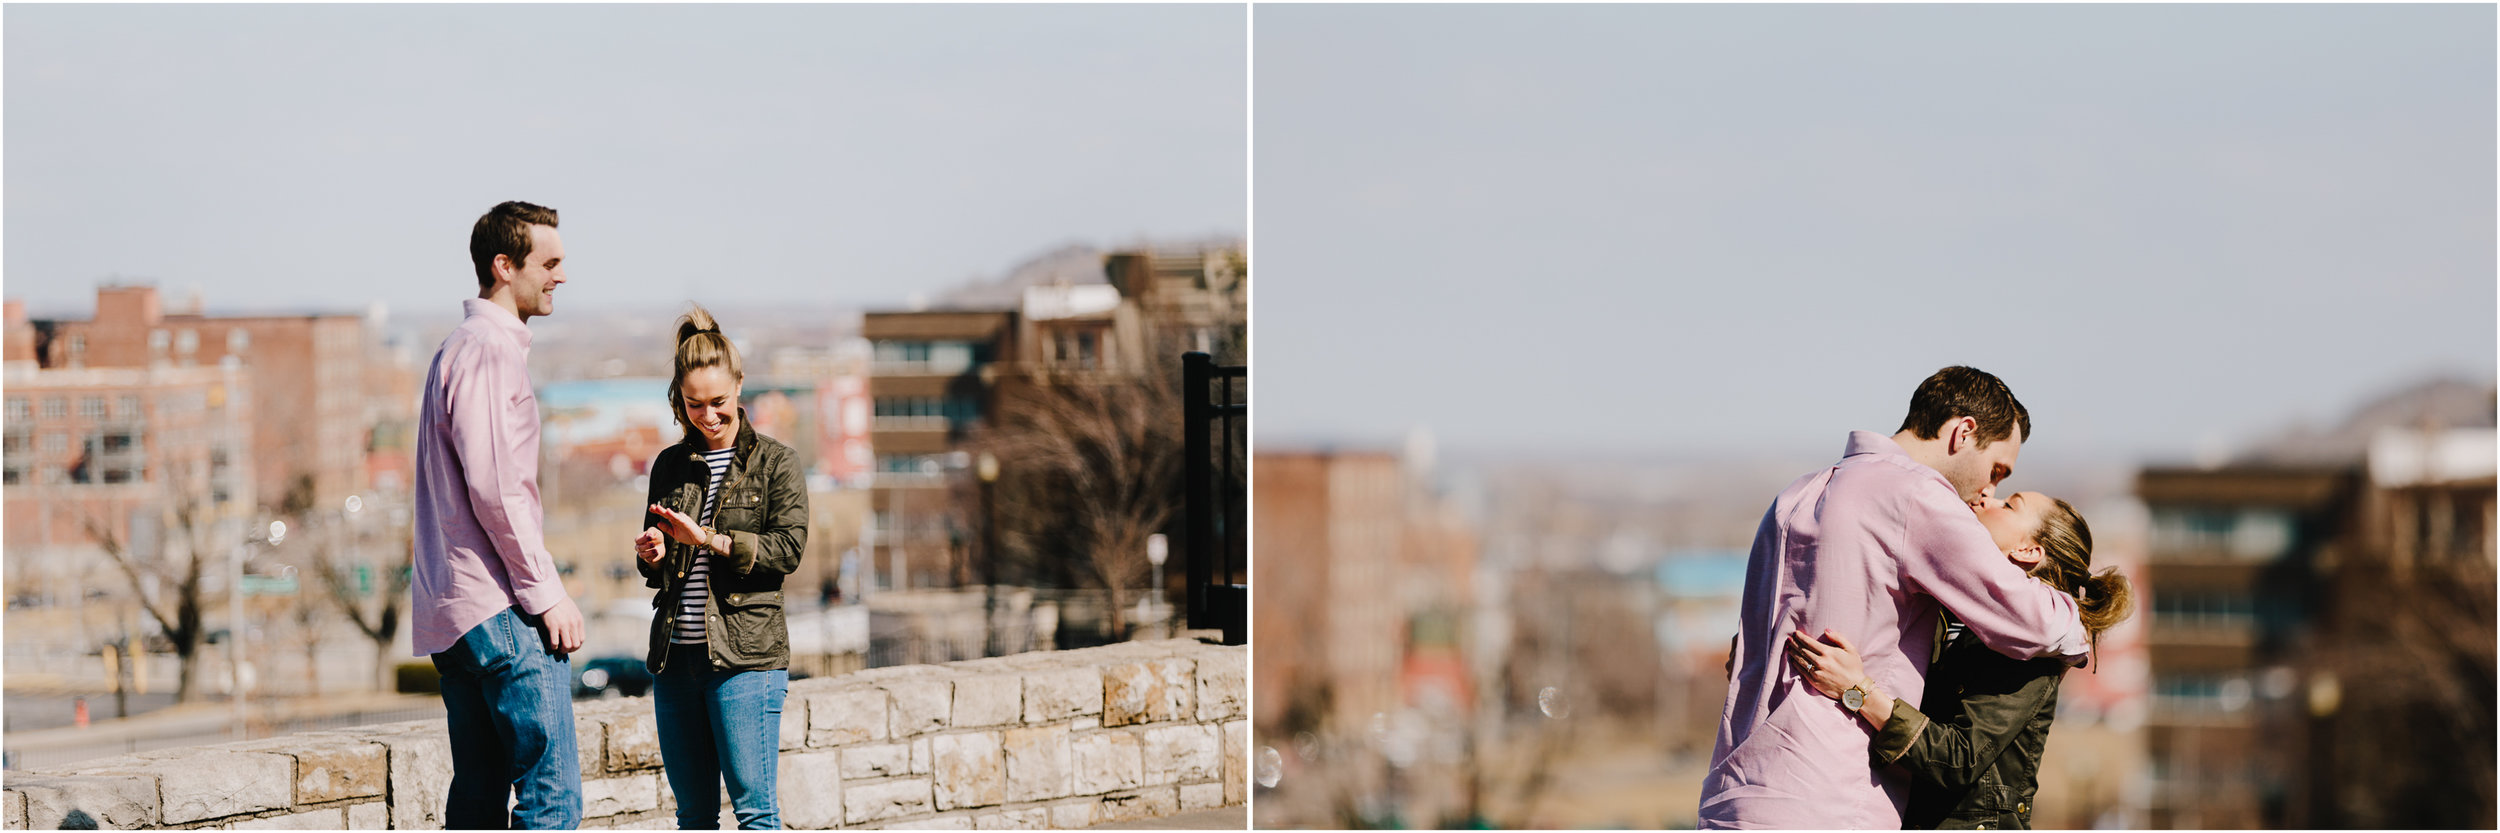 alyssa barletter photography kansas city kc proposal engagement how he asked she said yes-4.jpg